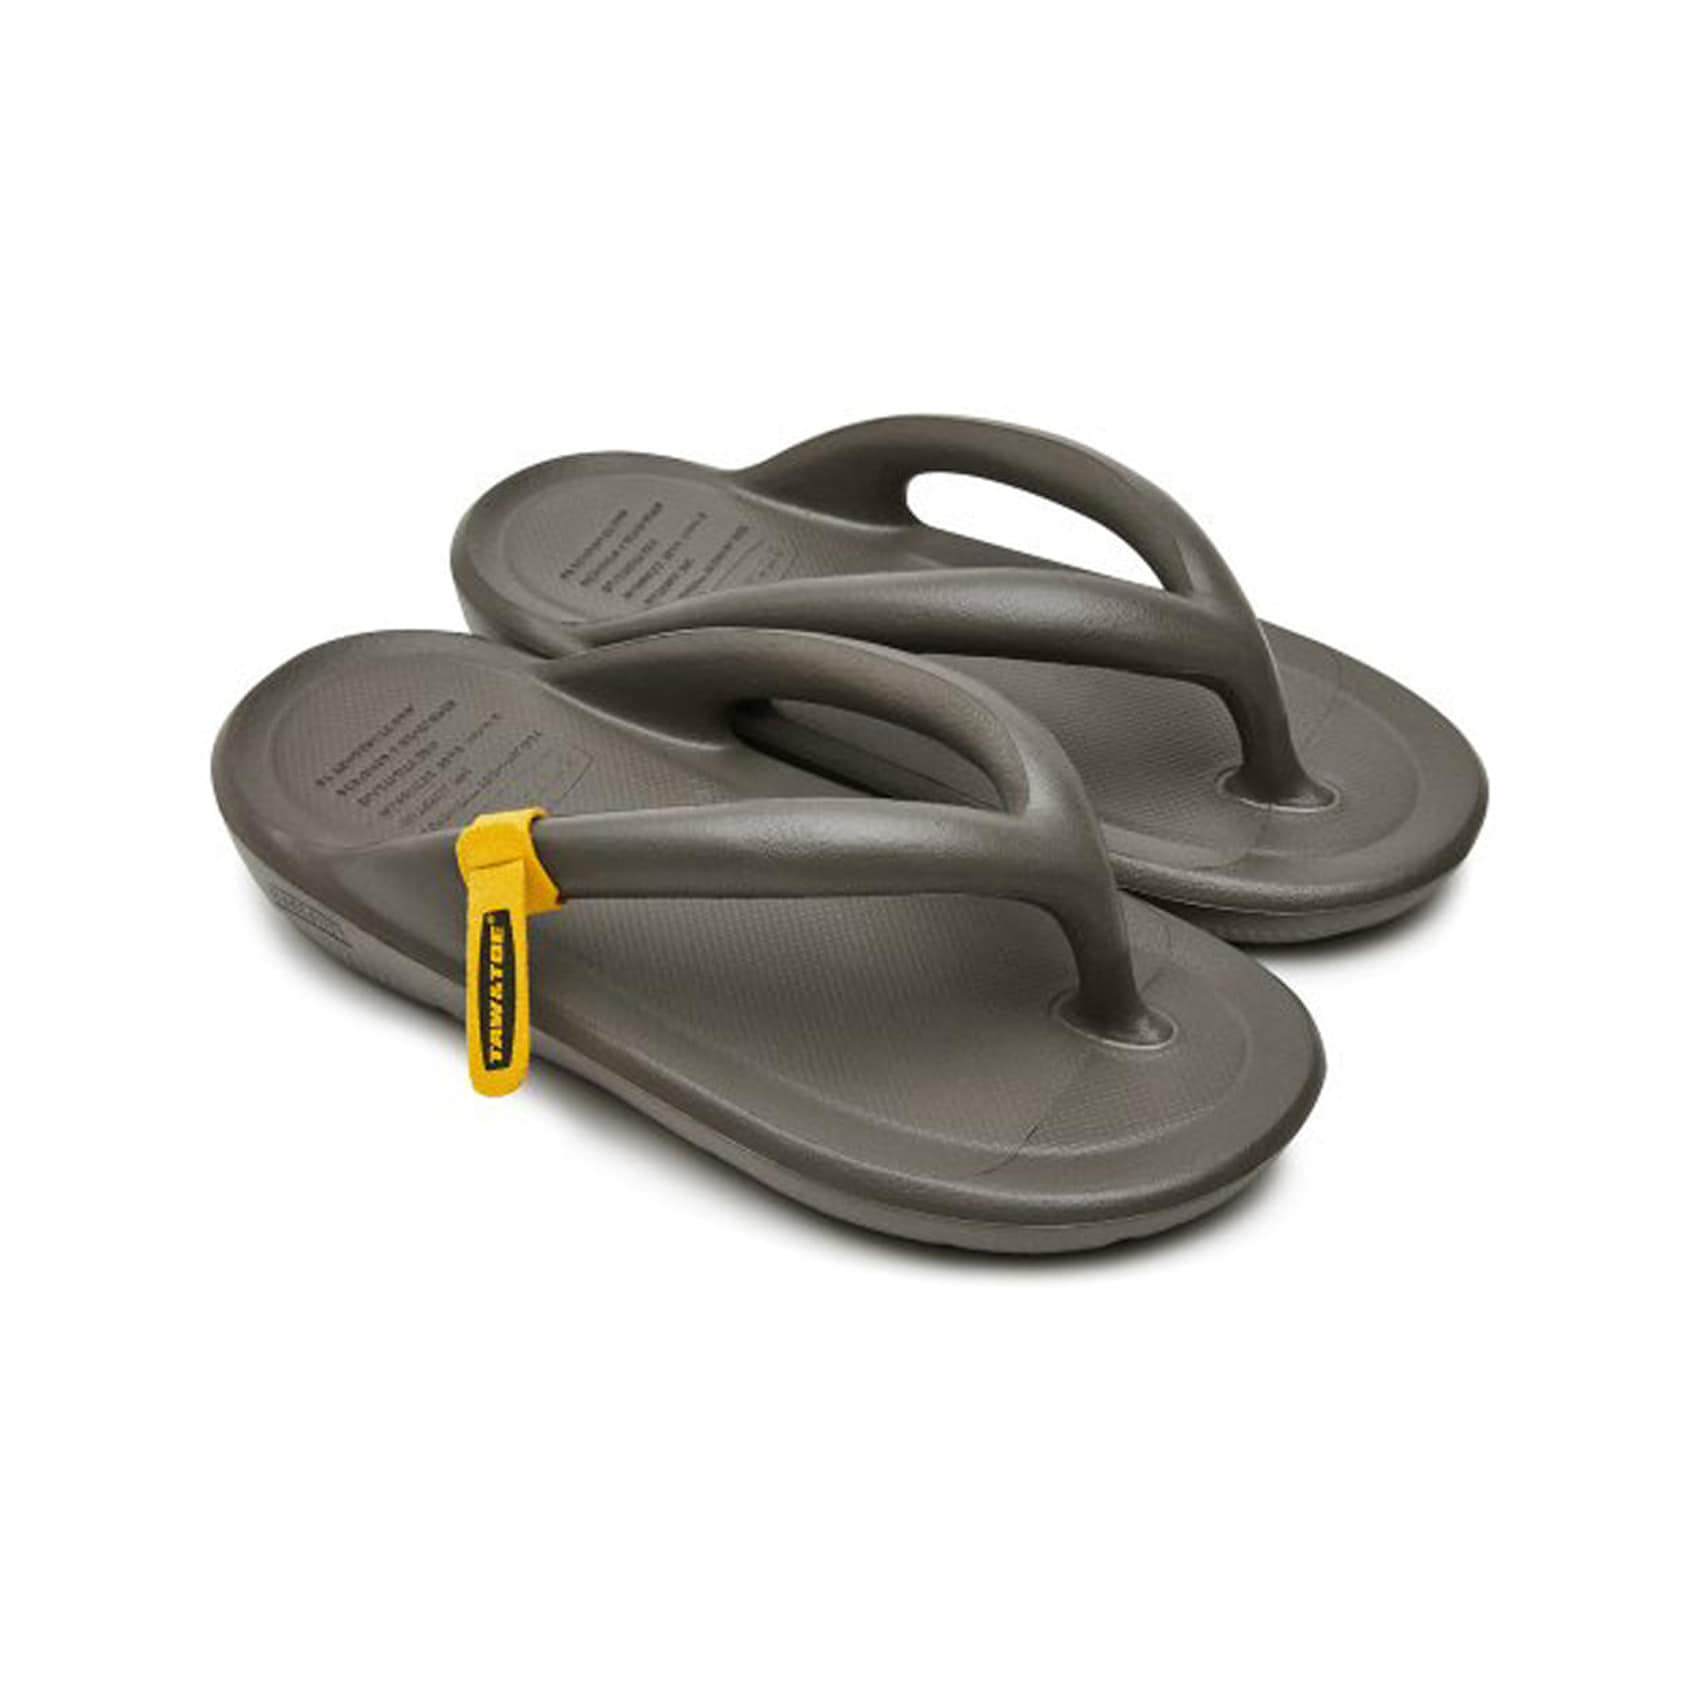 ZEROVITY FLIP FLOP - CHARCOAL 2.0